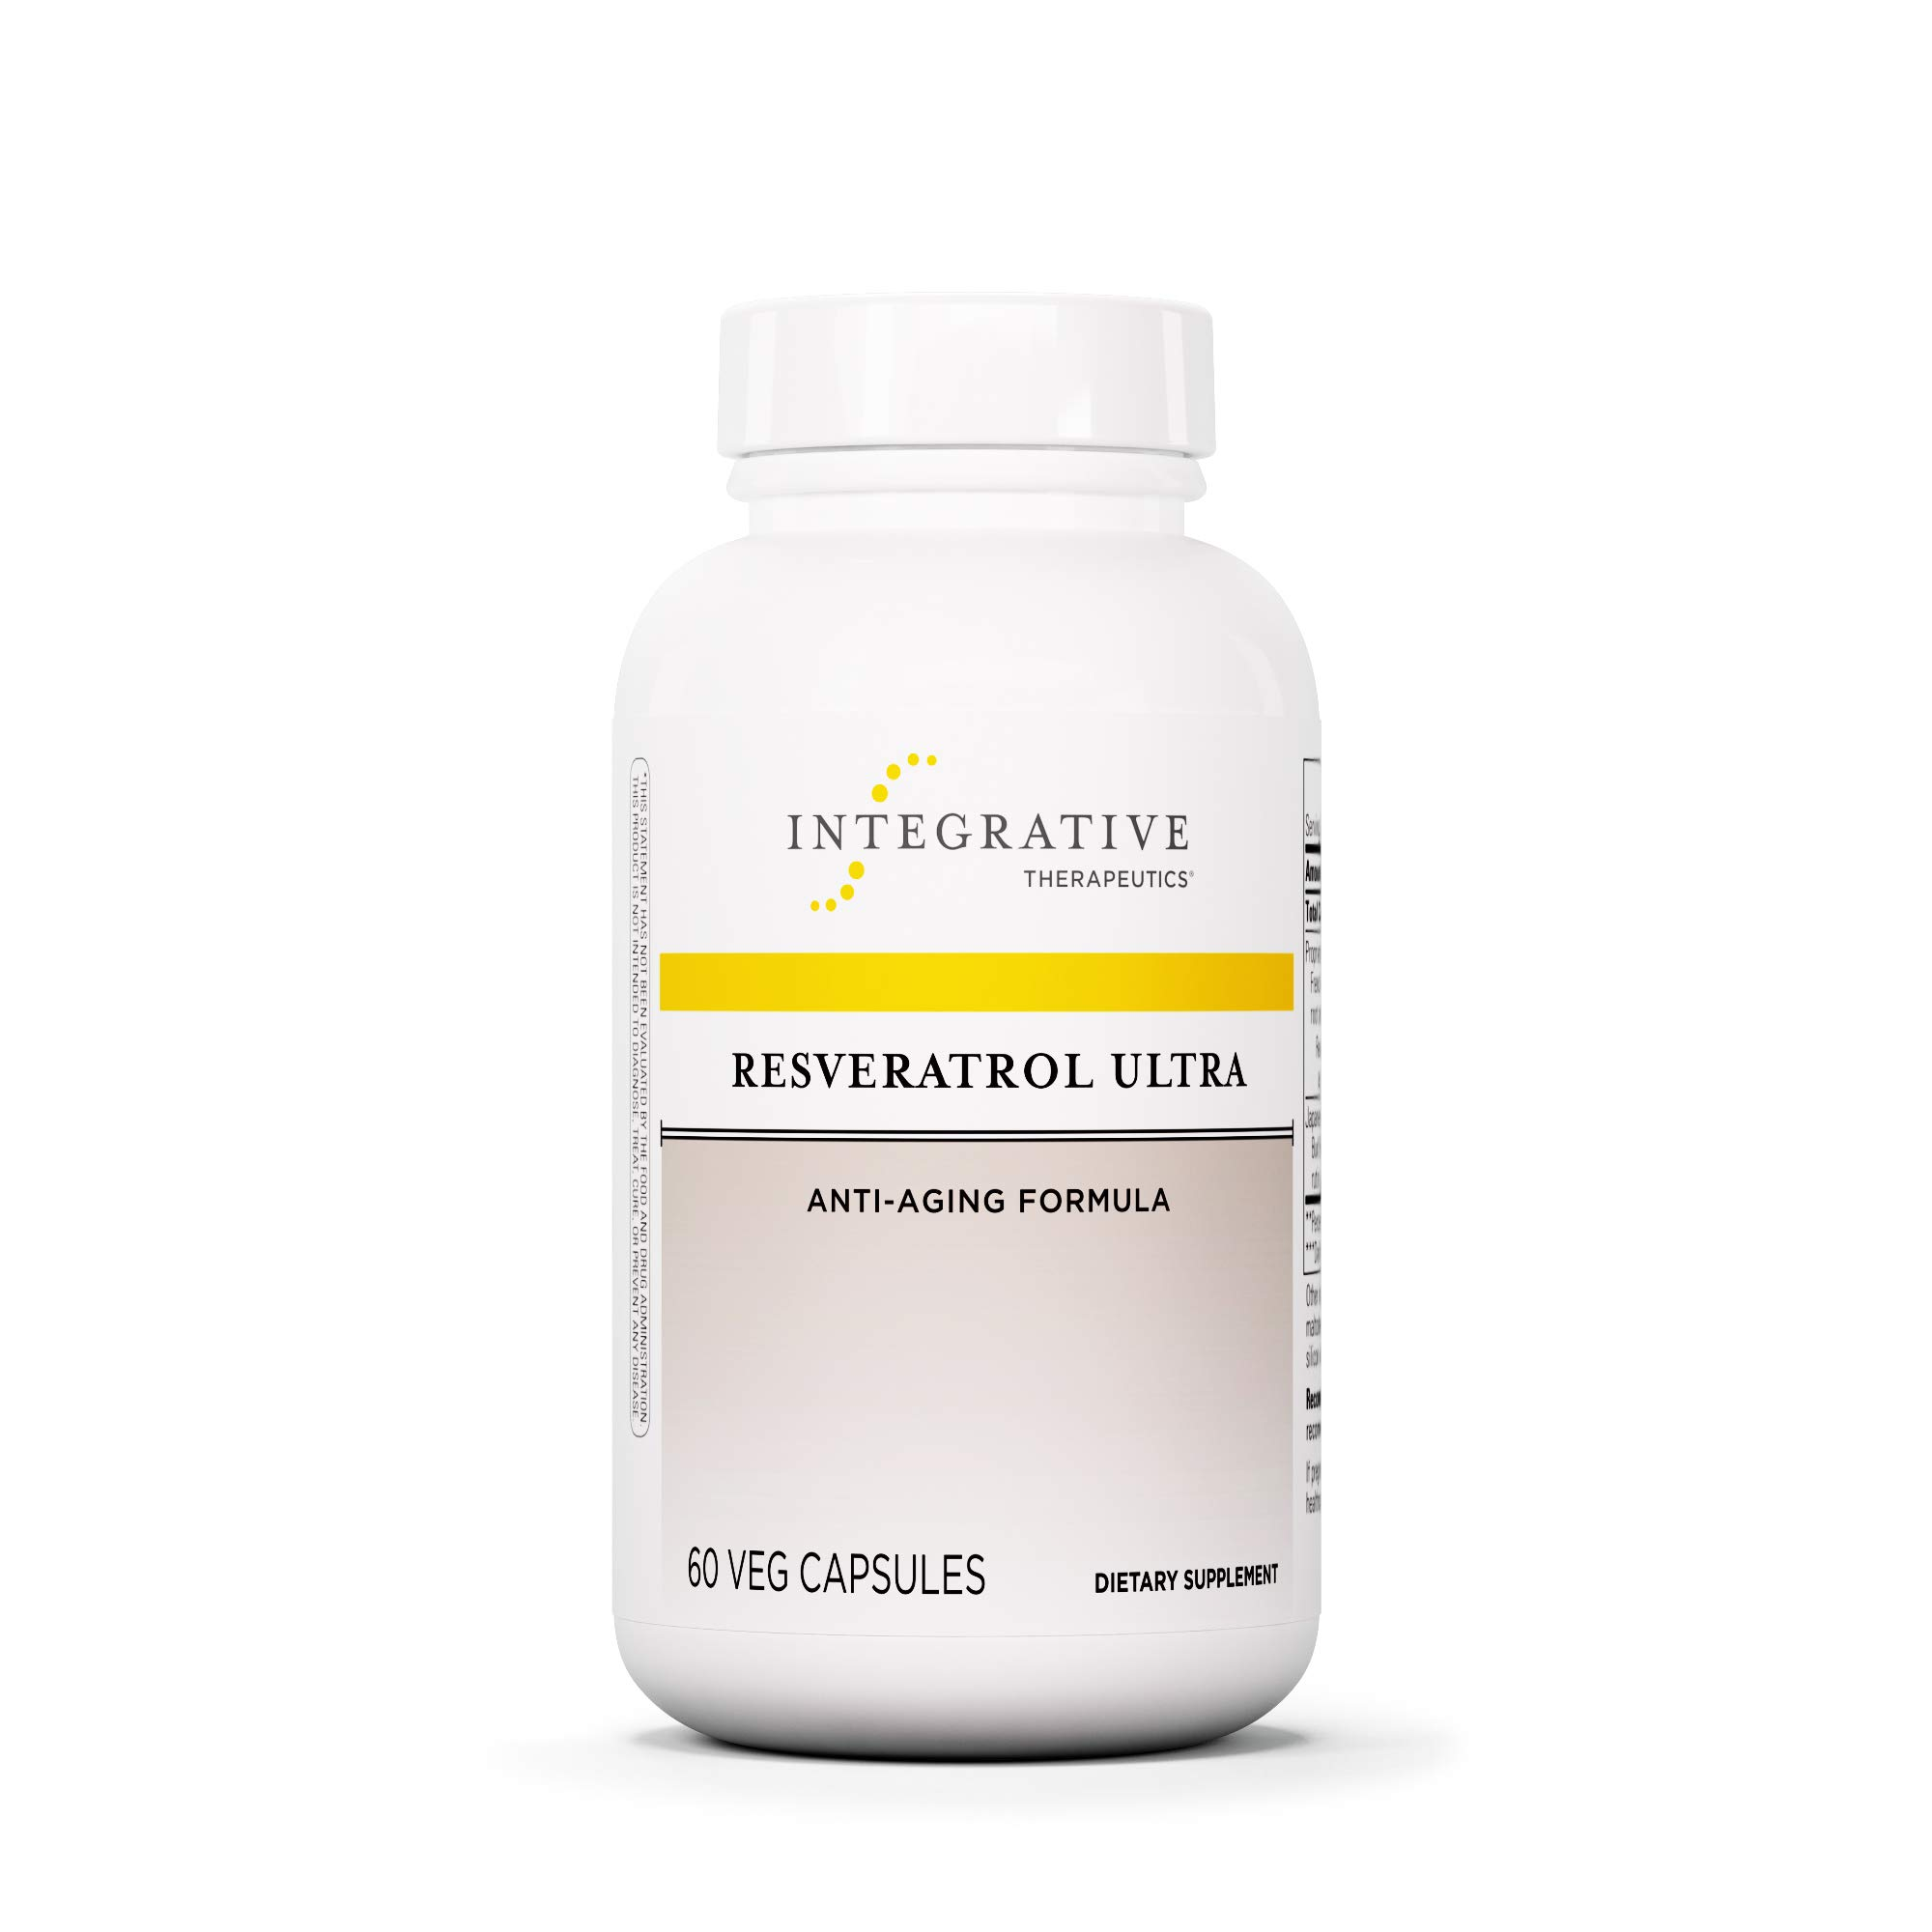 Integrative Therapeutics - Resveratrol Ultra - Anti Aging Formula - Spports Cellular Health to Reduce Oxidative Stress - 60 Capsules by Integrative Therapeutics